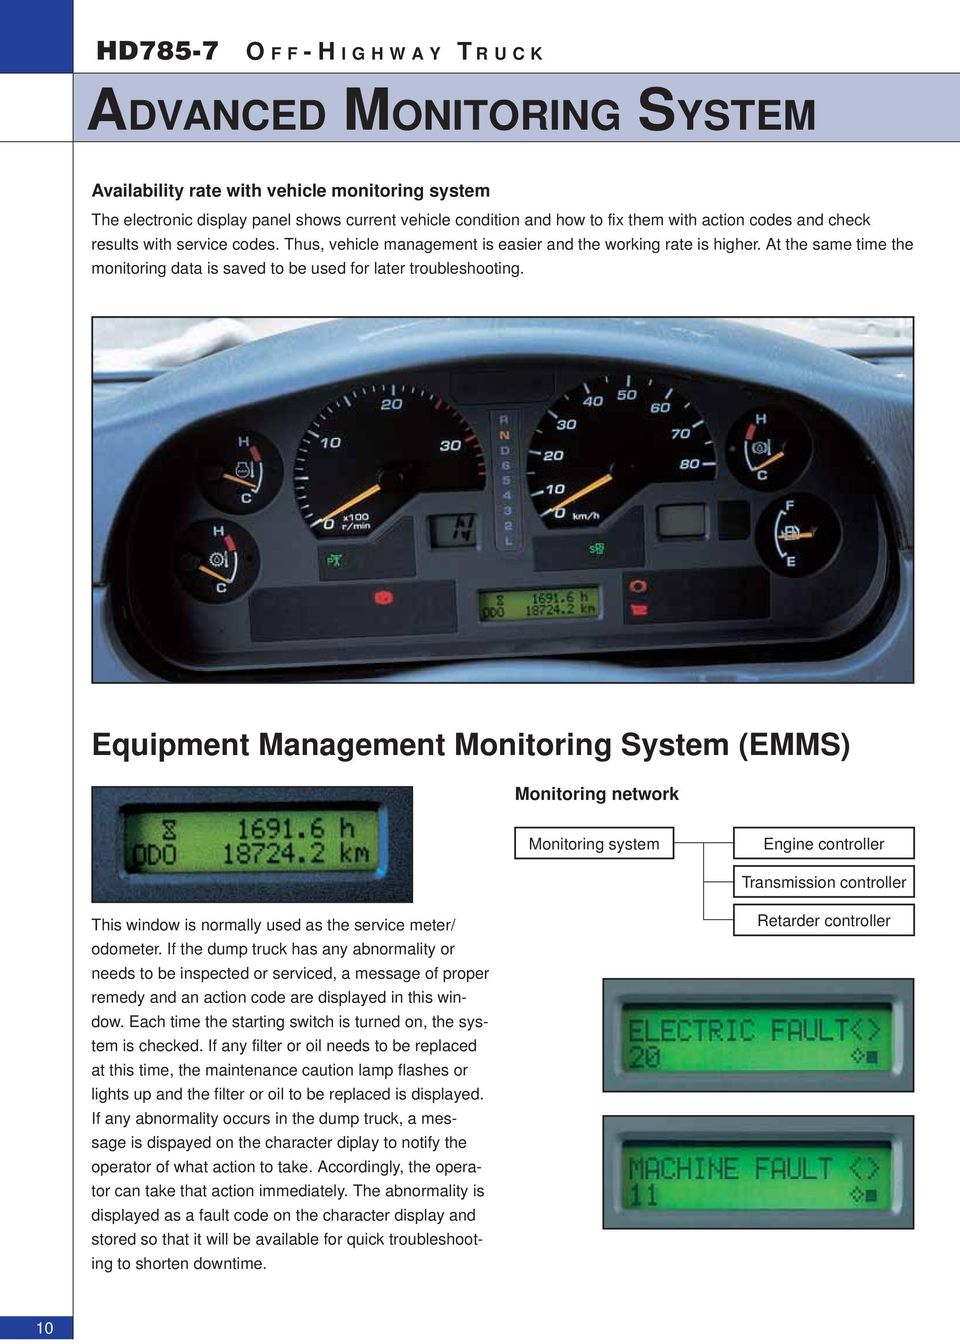 Equipment Management Monitoring System (EMMS) Monitoring network Monitoring system Engine controller Transmission controller This window is normally used as the service meter/ odometer.